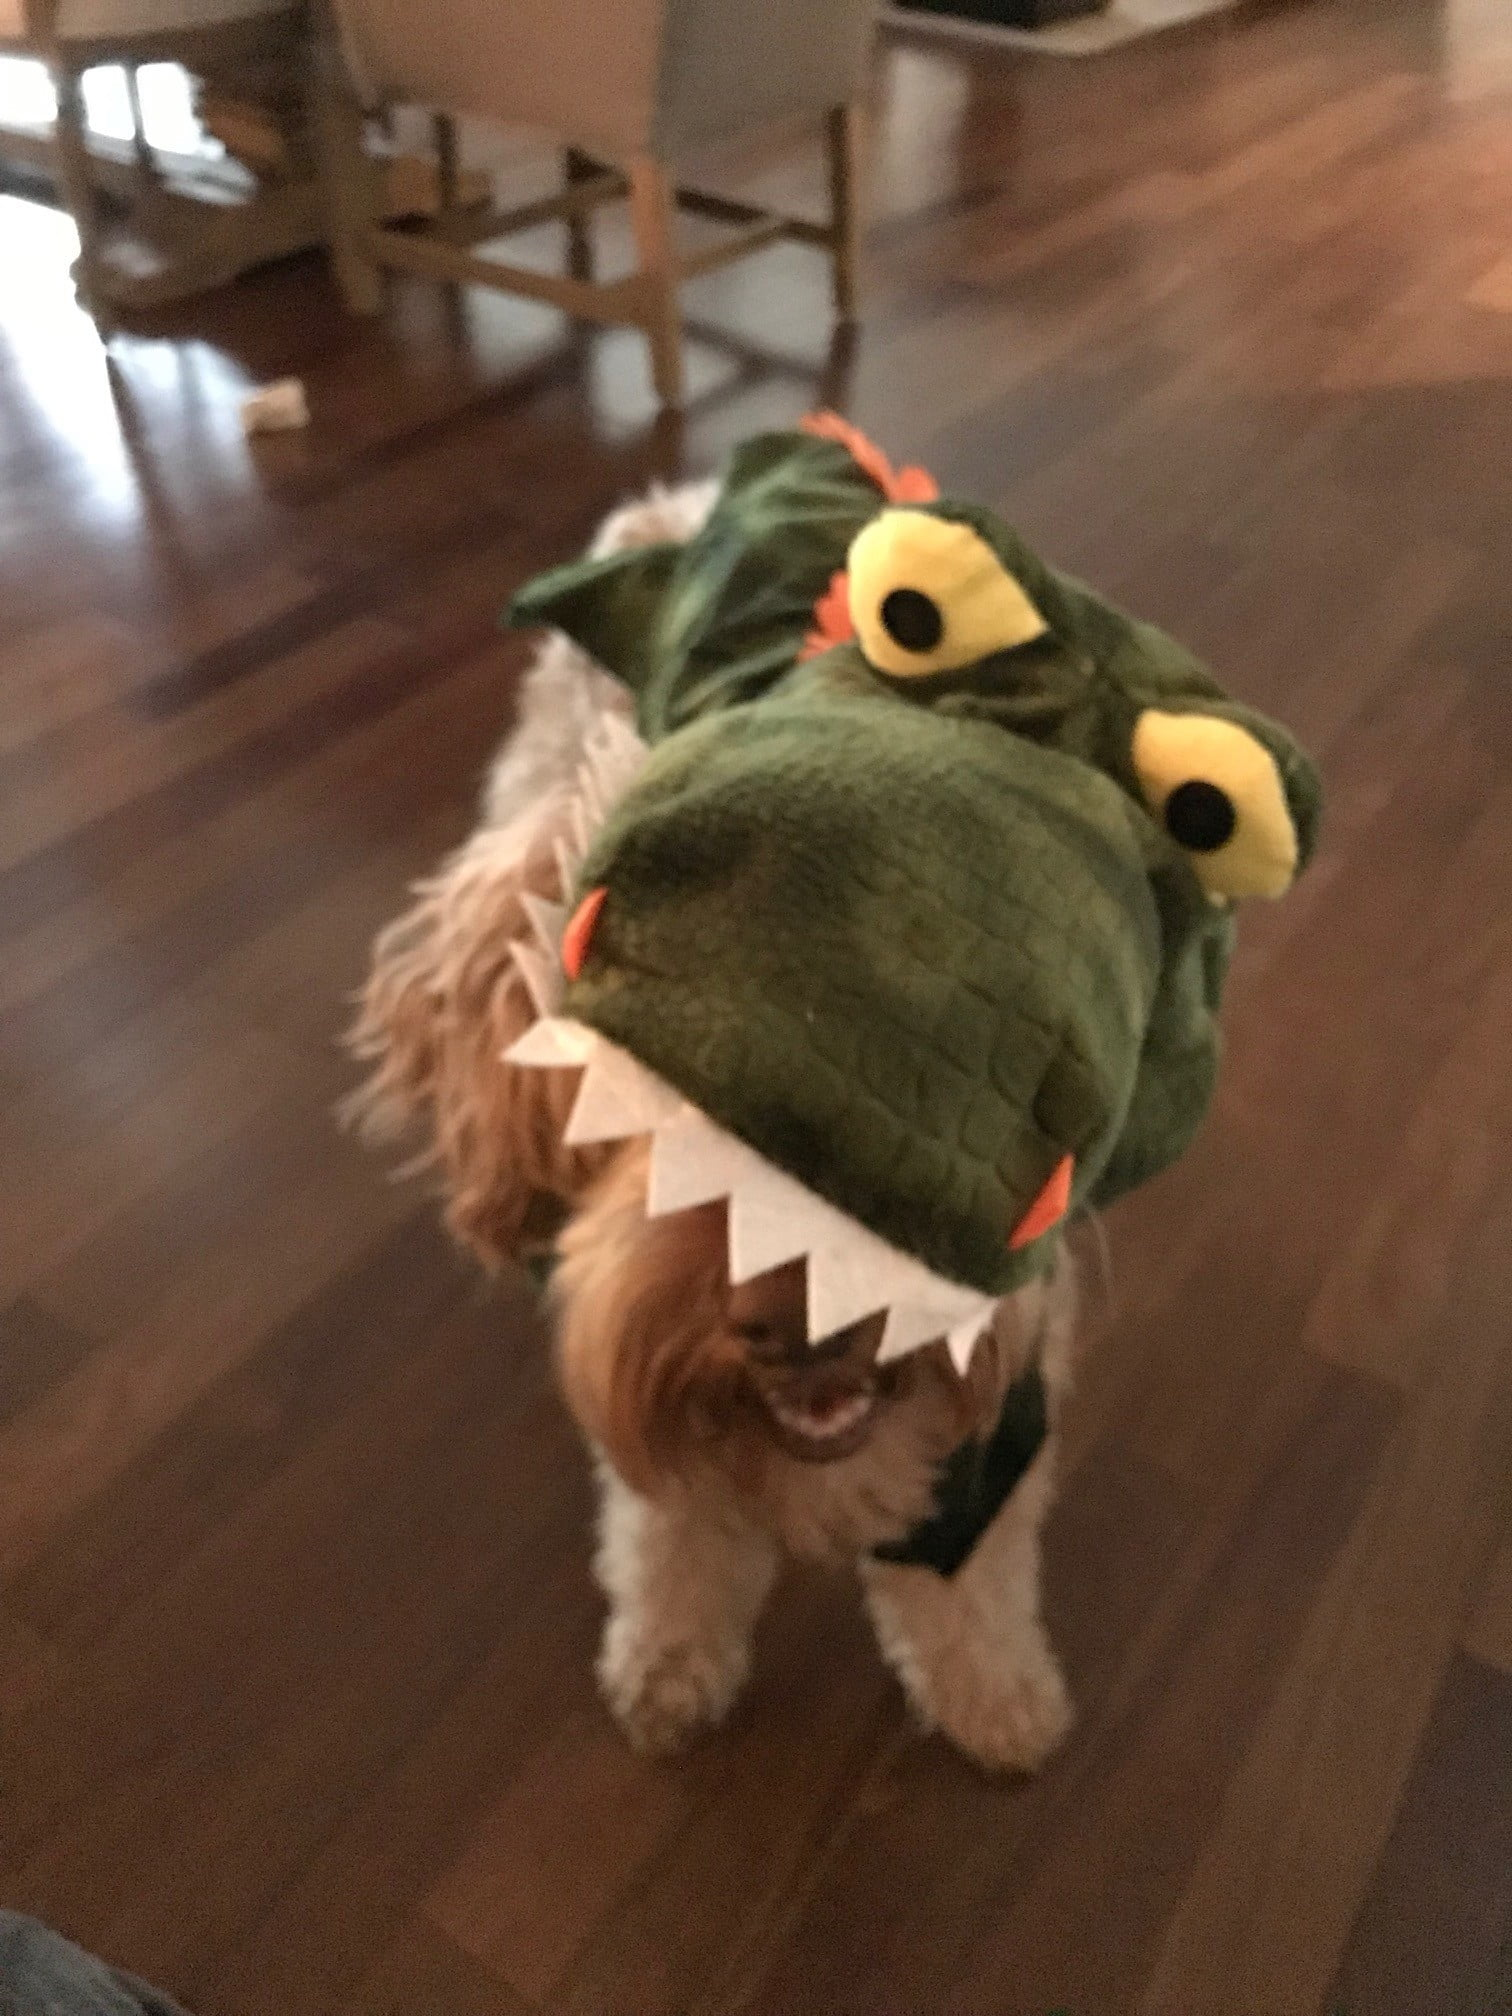 a brown australian labradoodle in a green dragon costume stands on hardwood floor